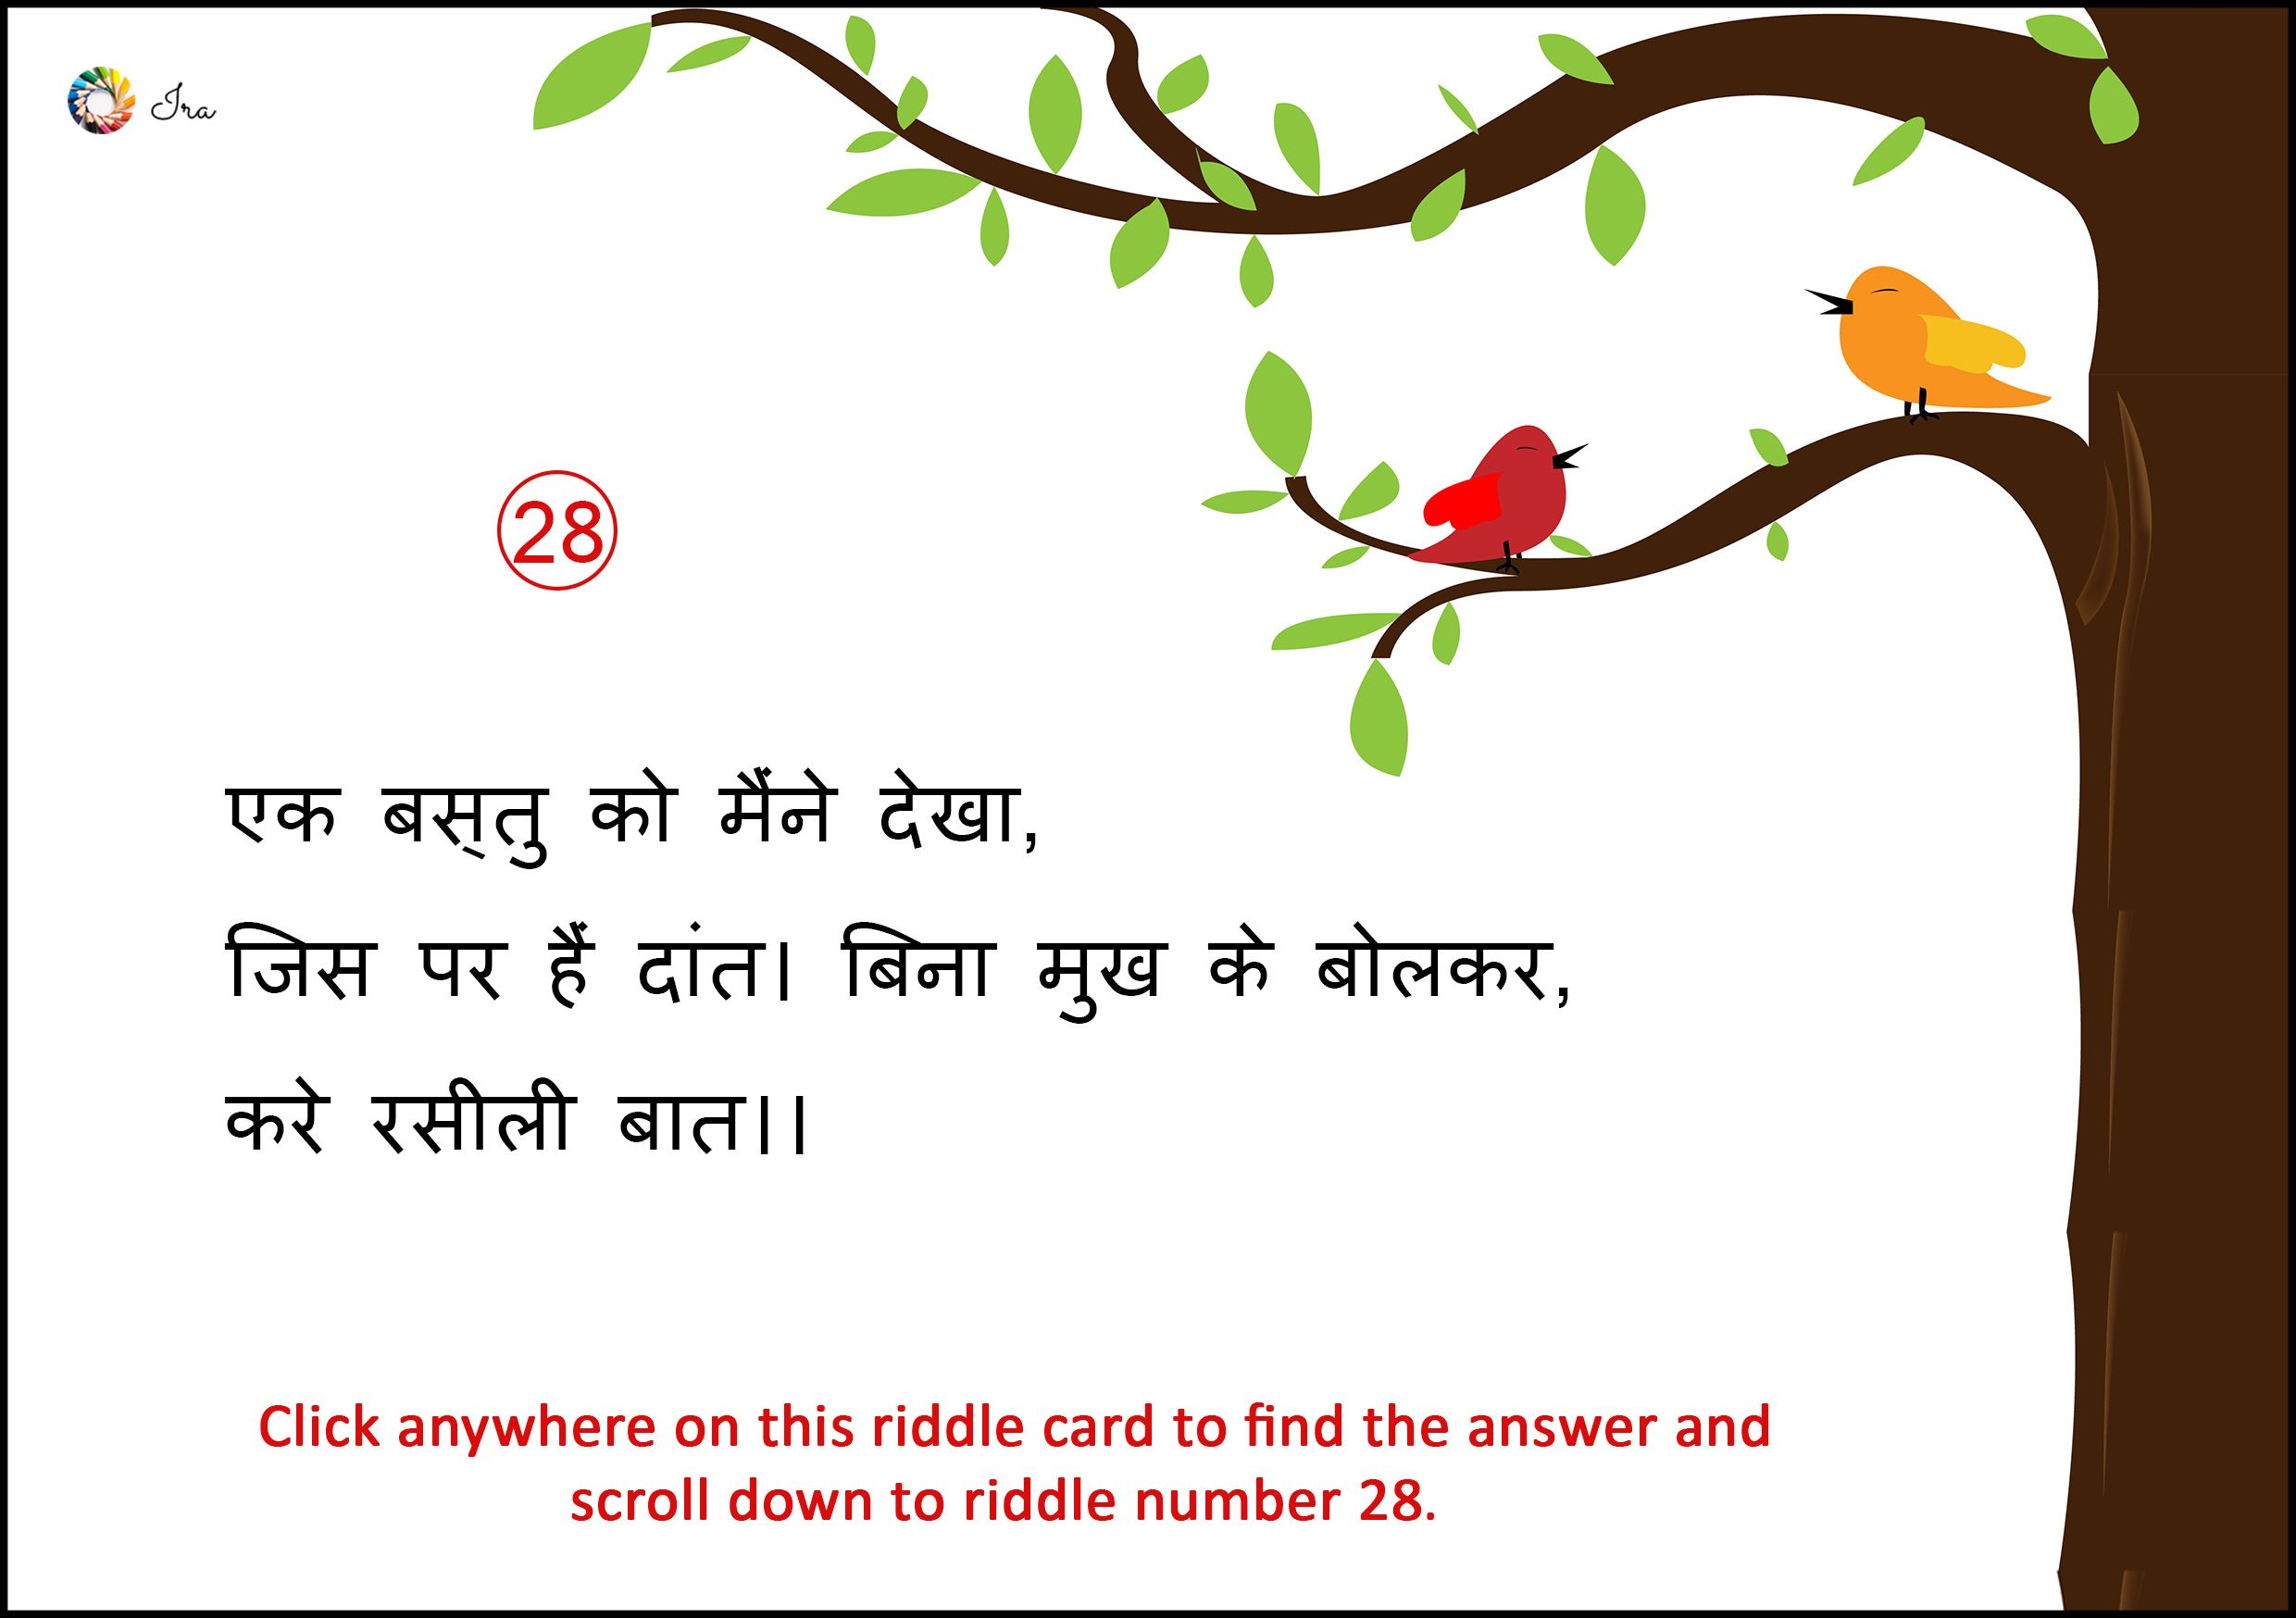 60 Rare Riddles in Hindi with Answers Riddles, Life